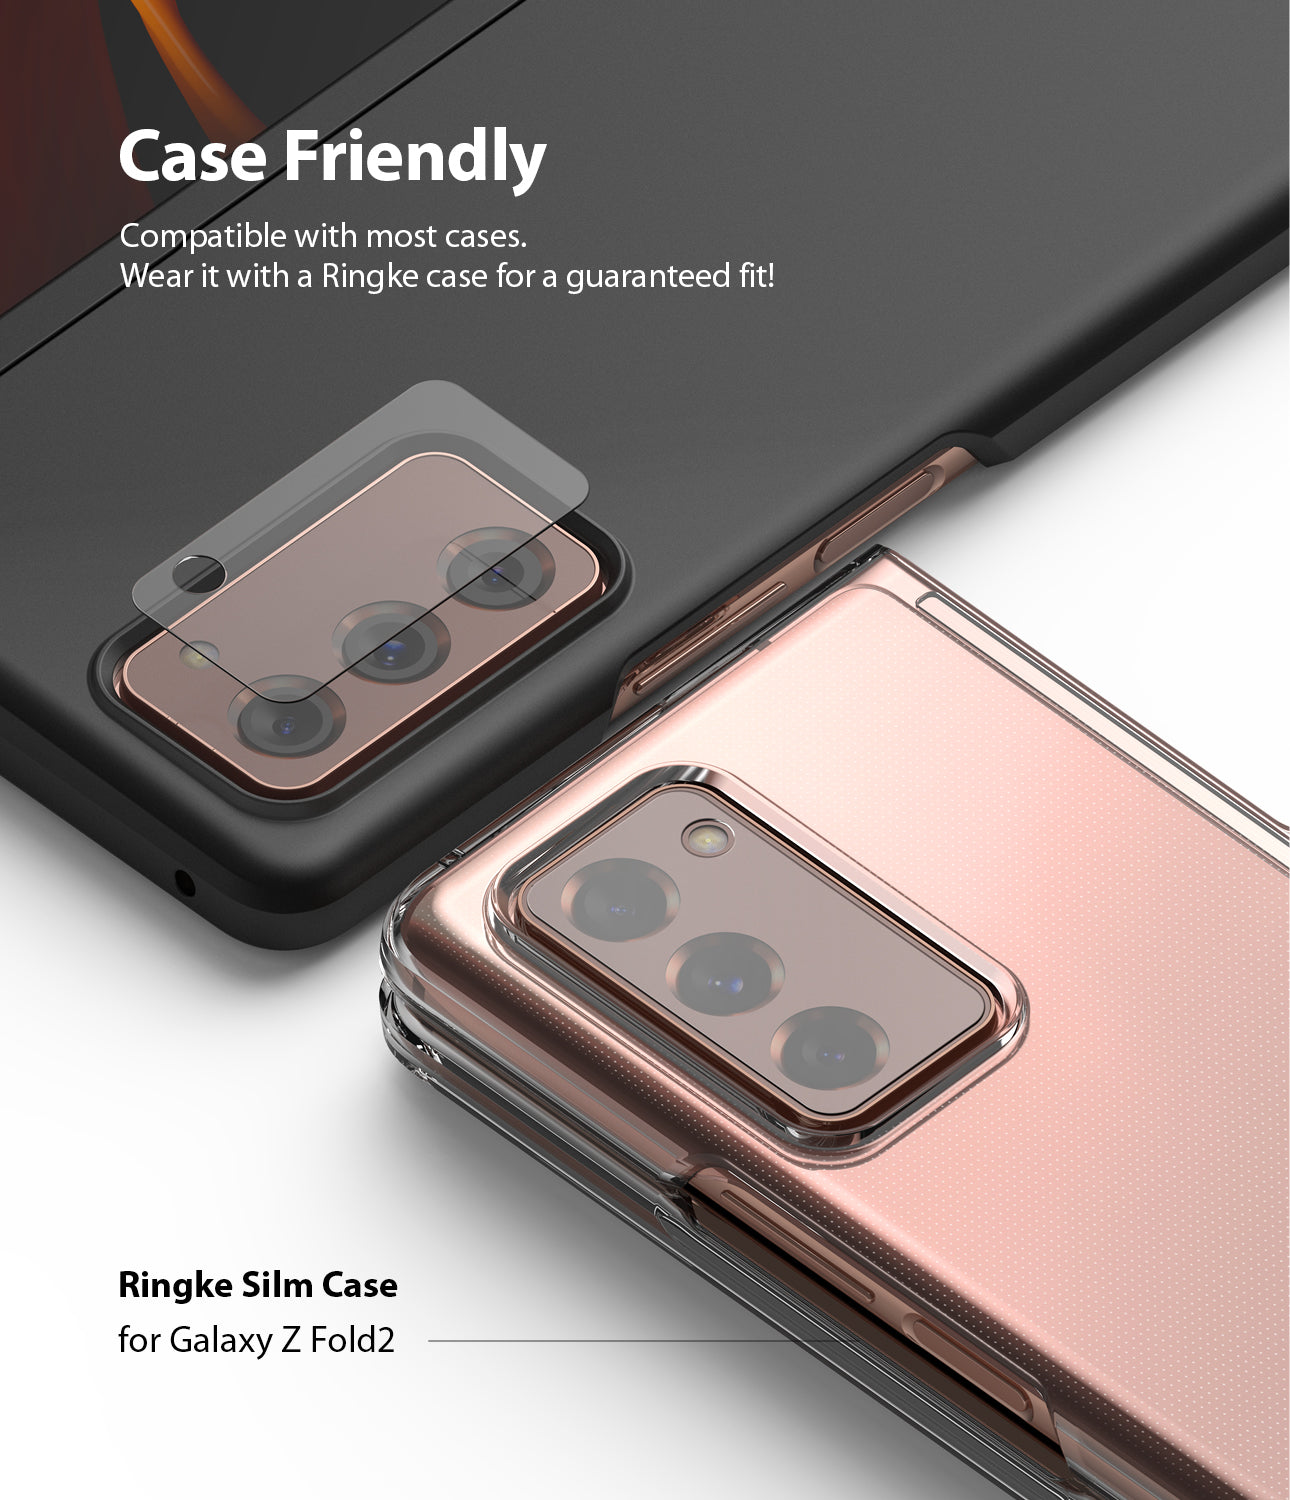 compatible with most cases